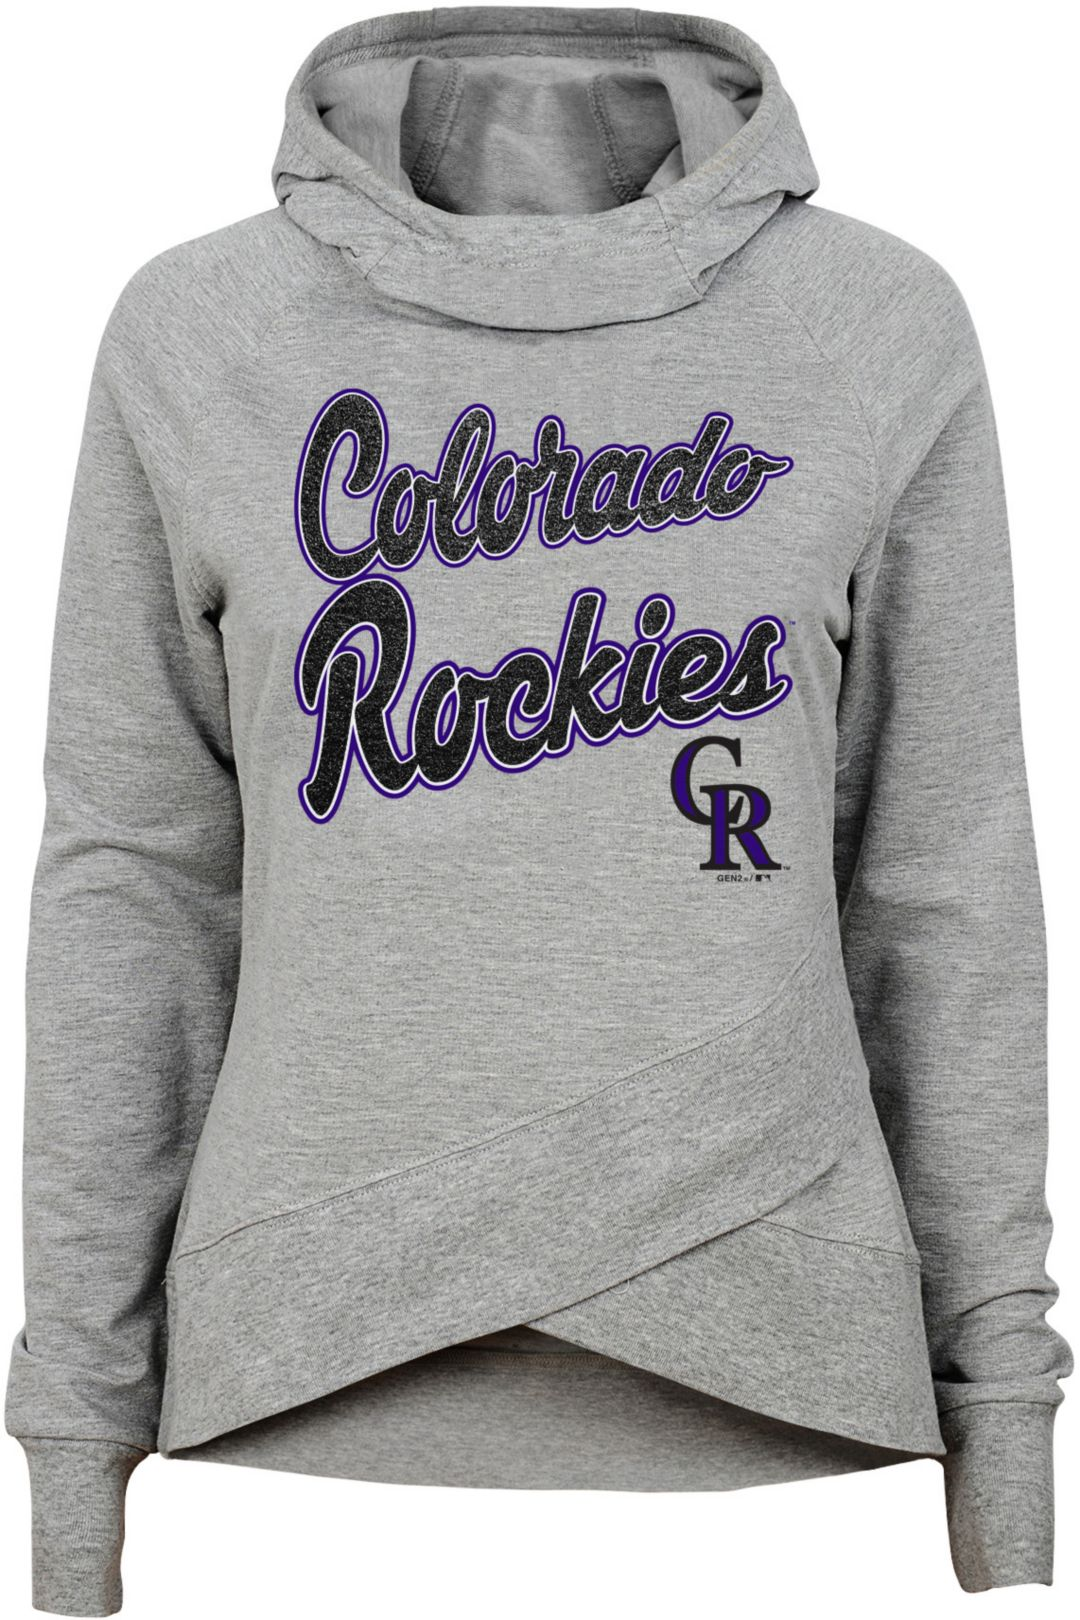 info for ad379 5da8c Gen2 Youth Girls' Colorado Rockies Funnel Neck Pullover Hoodie